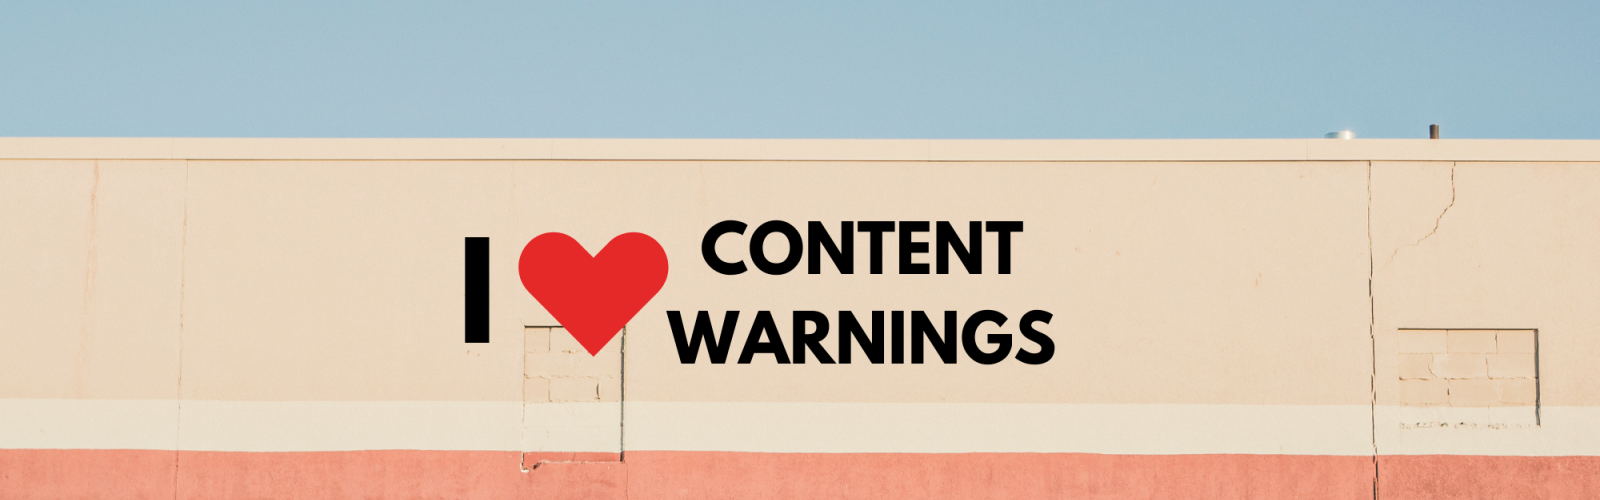 """Building with a sign that says """"I Heart content warnings."""""""